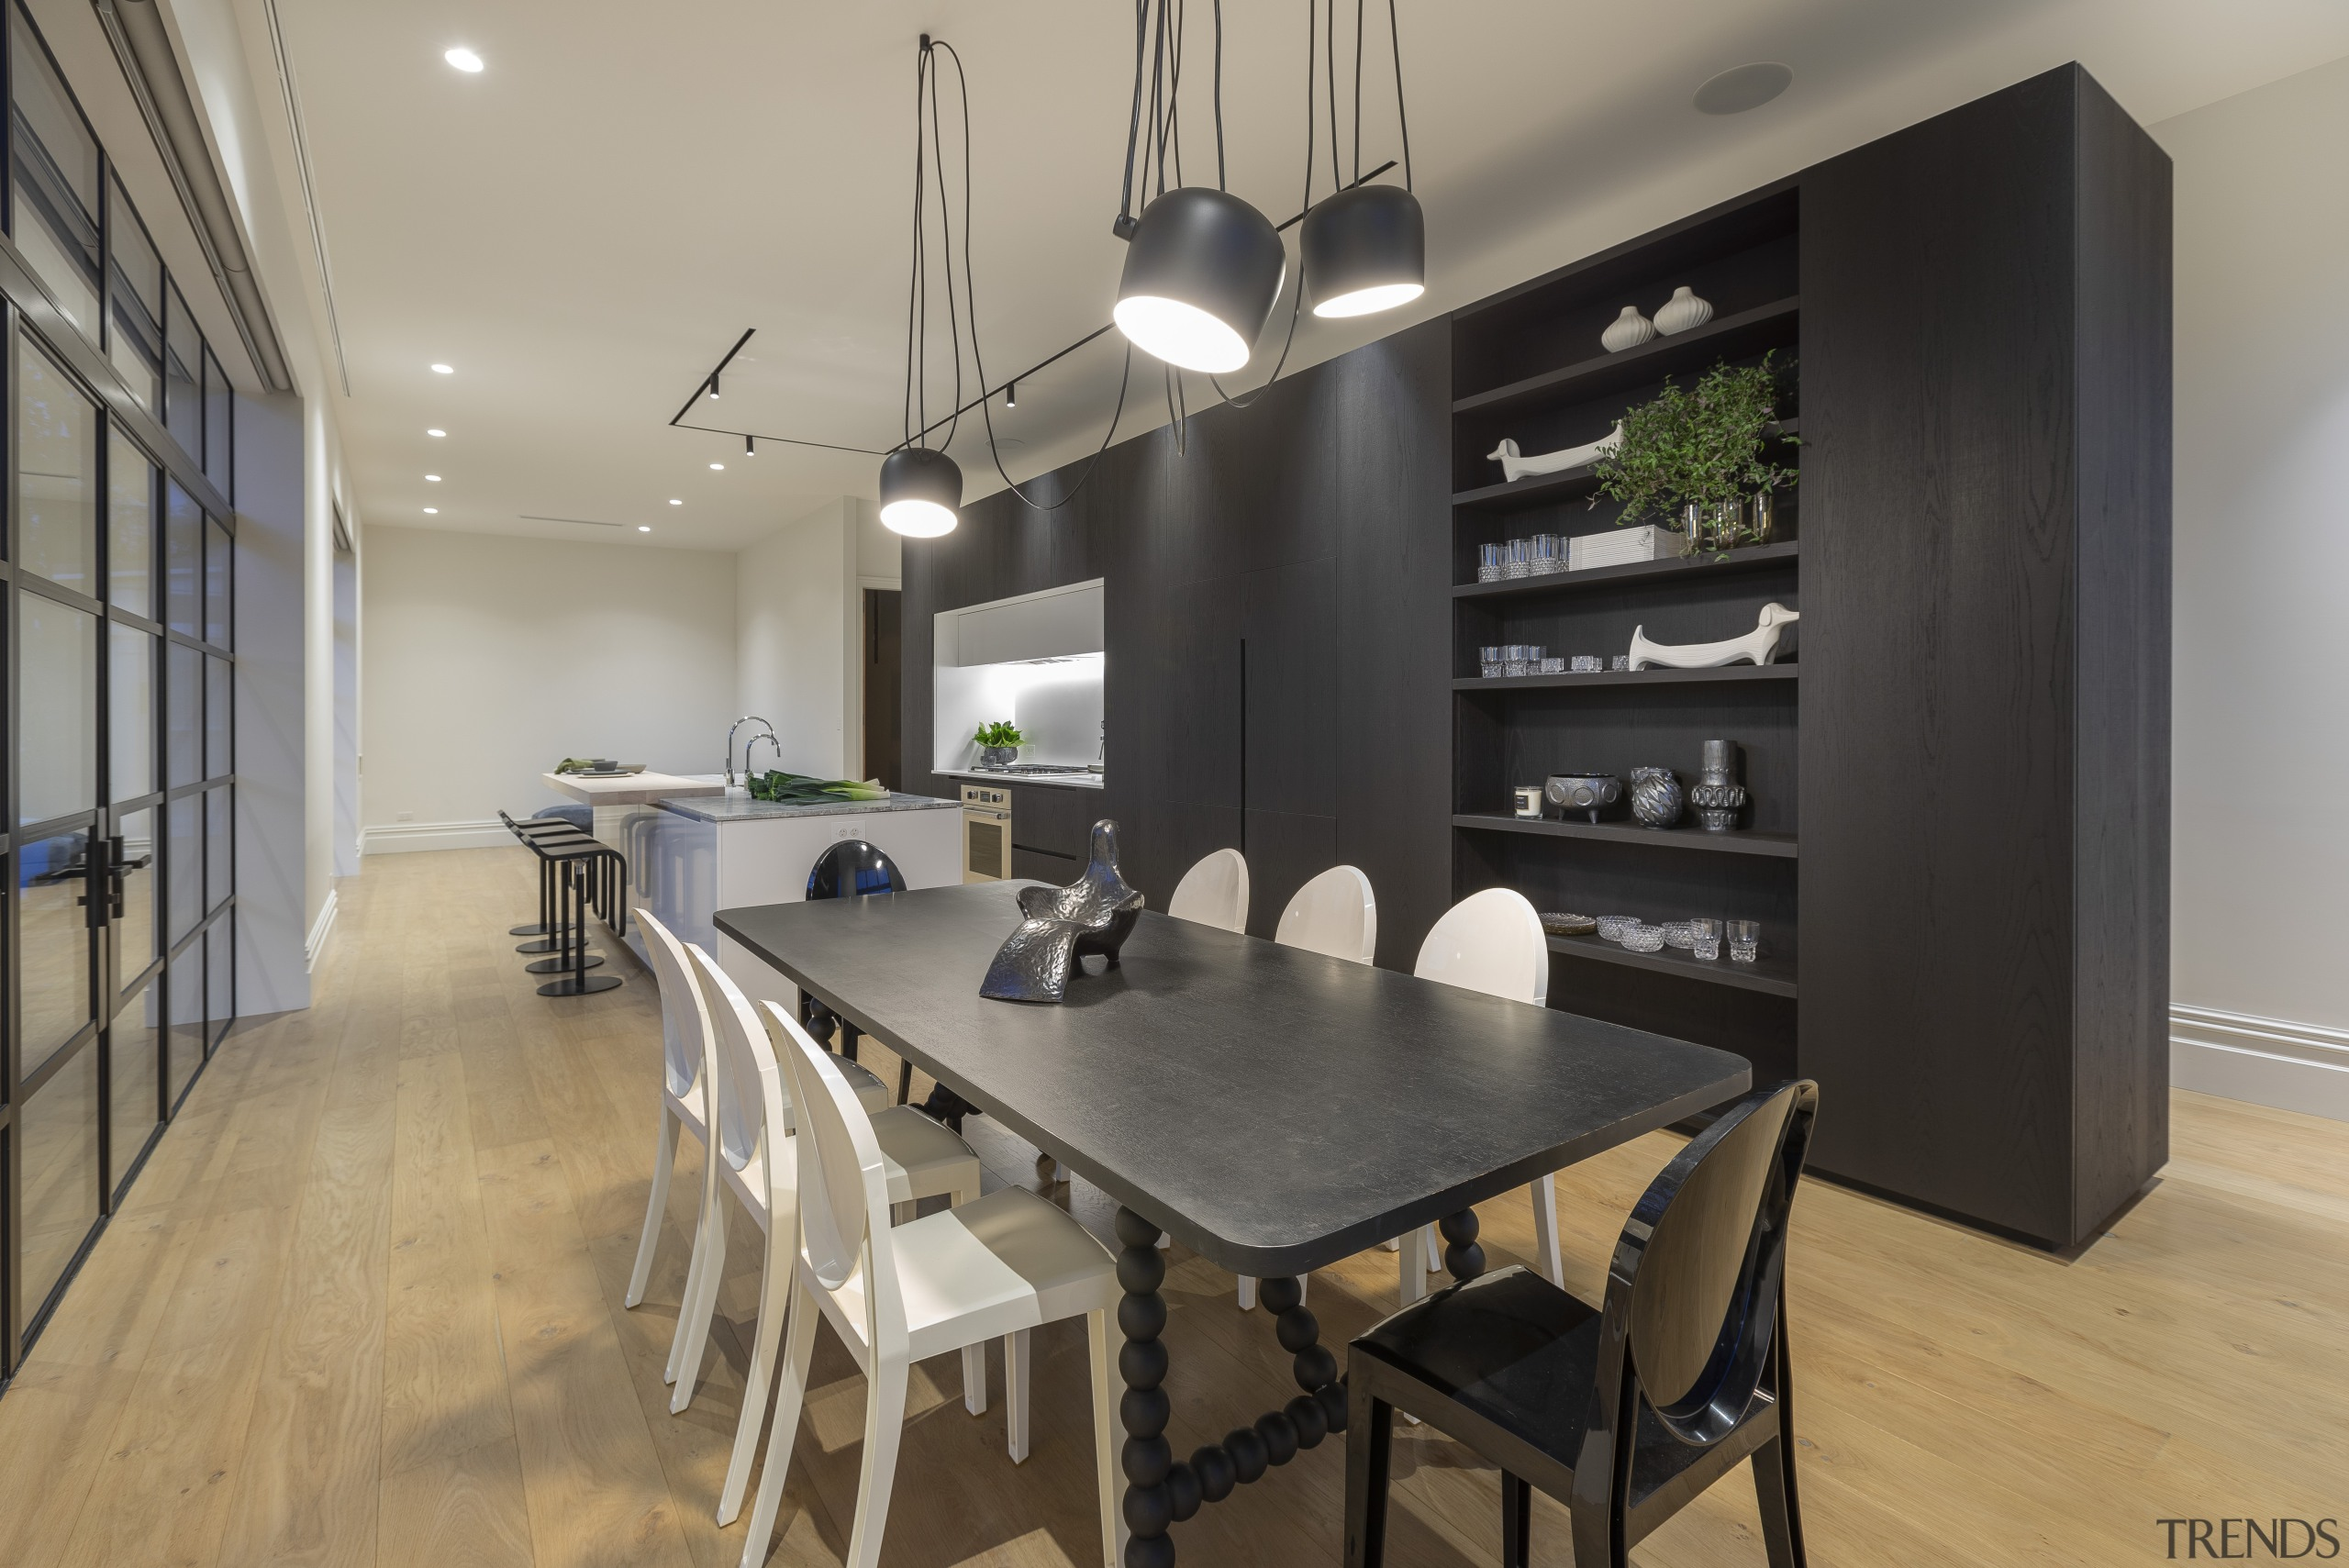 The kitchen had to incorporate breakfast seating and architecture, building, ceiling, dining room, floor, flooring, furniture, hardwood, home, house, interior design, kitchen, kitchen & dining room table, laminate flooring, loft, property, real estate, room, table, wood flooring, gray, black